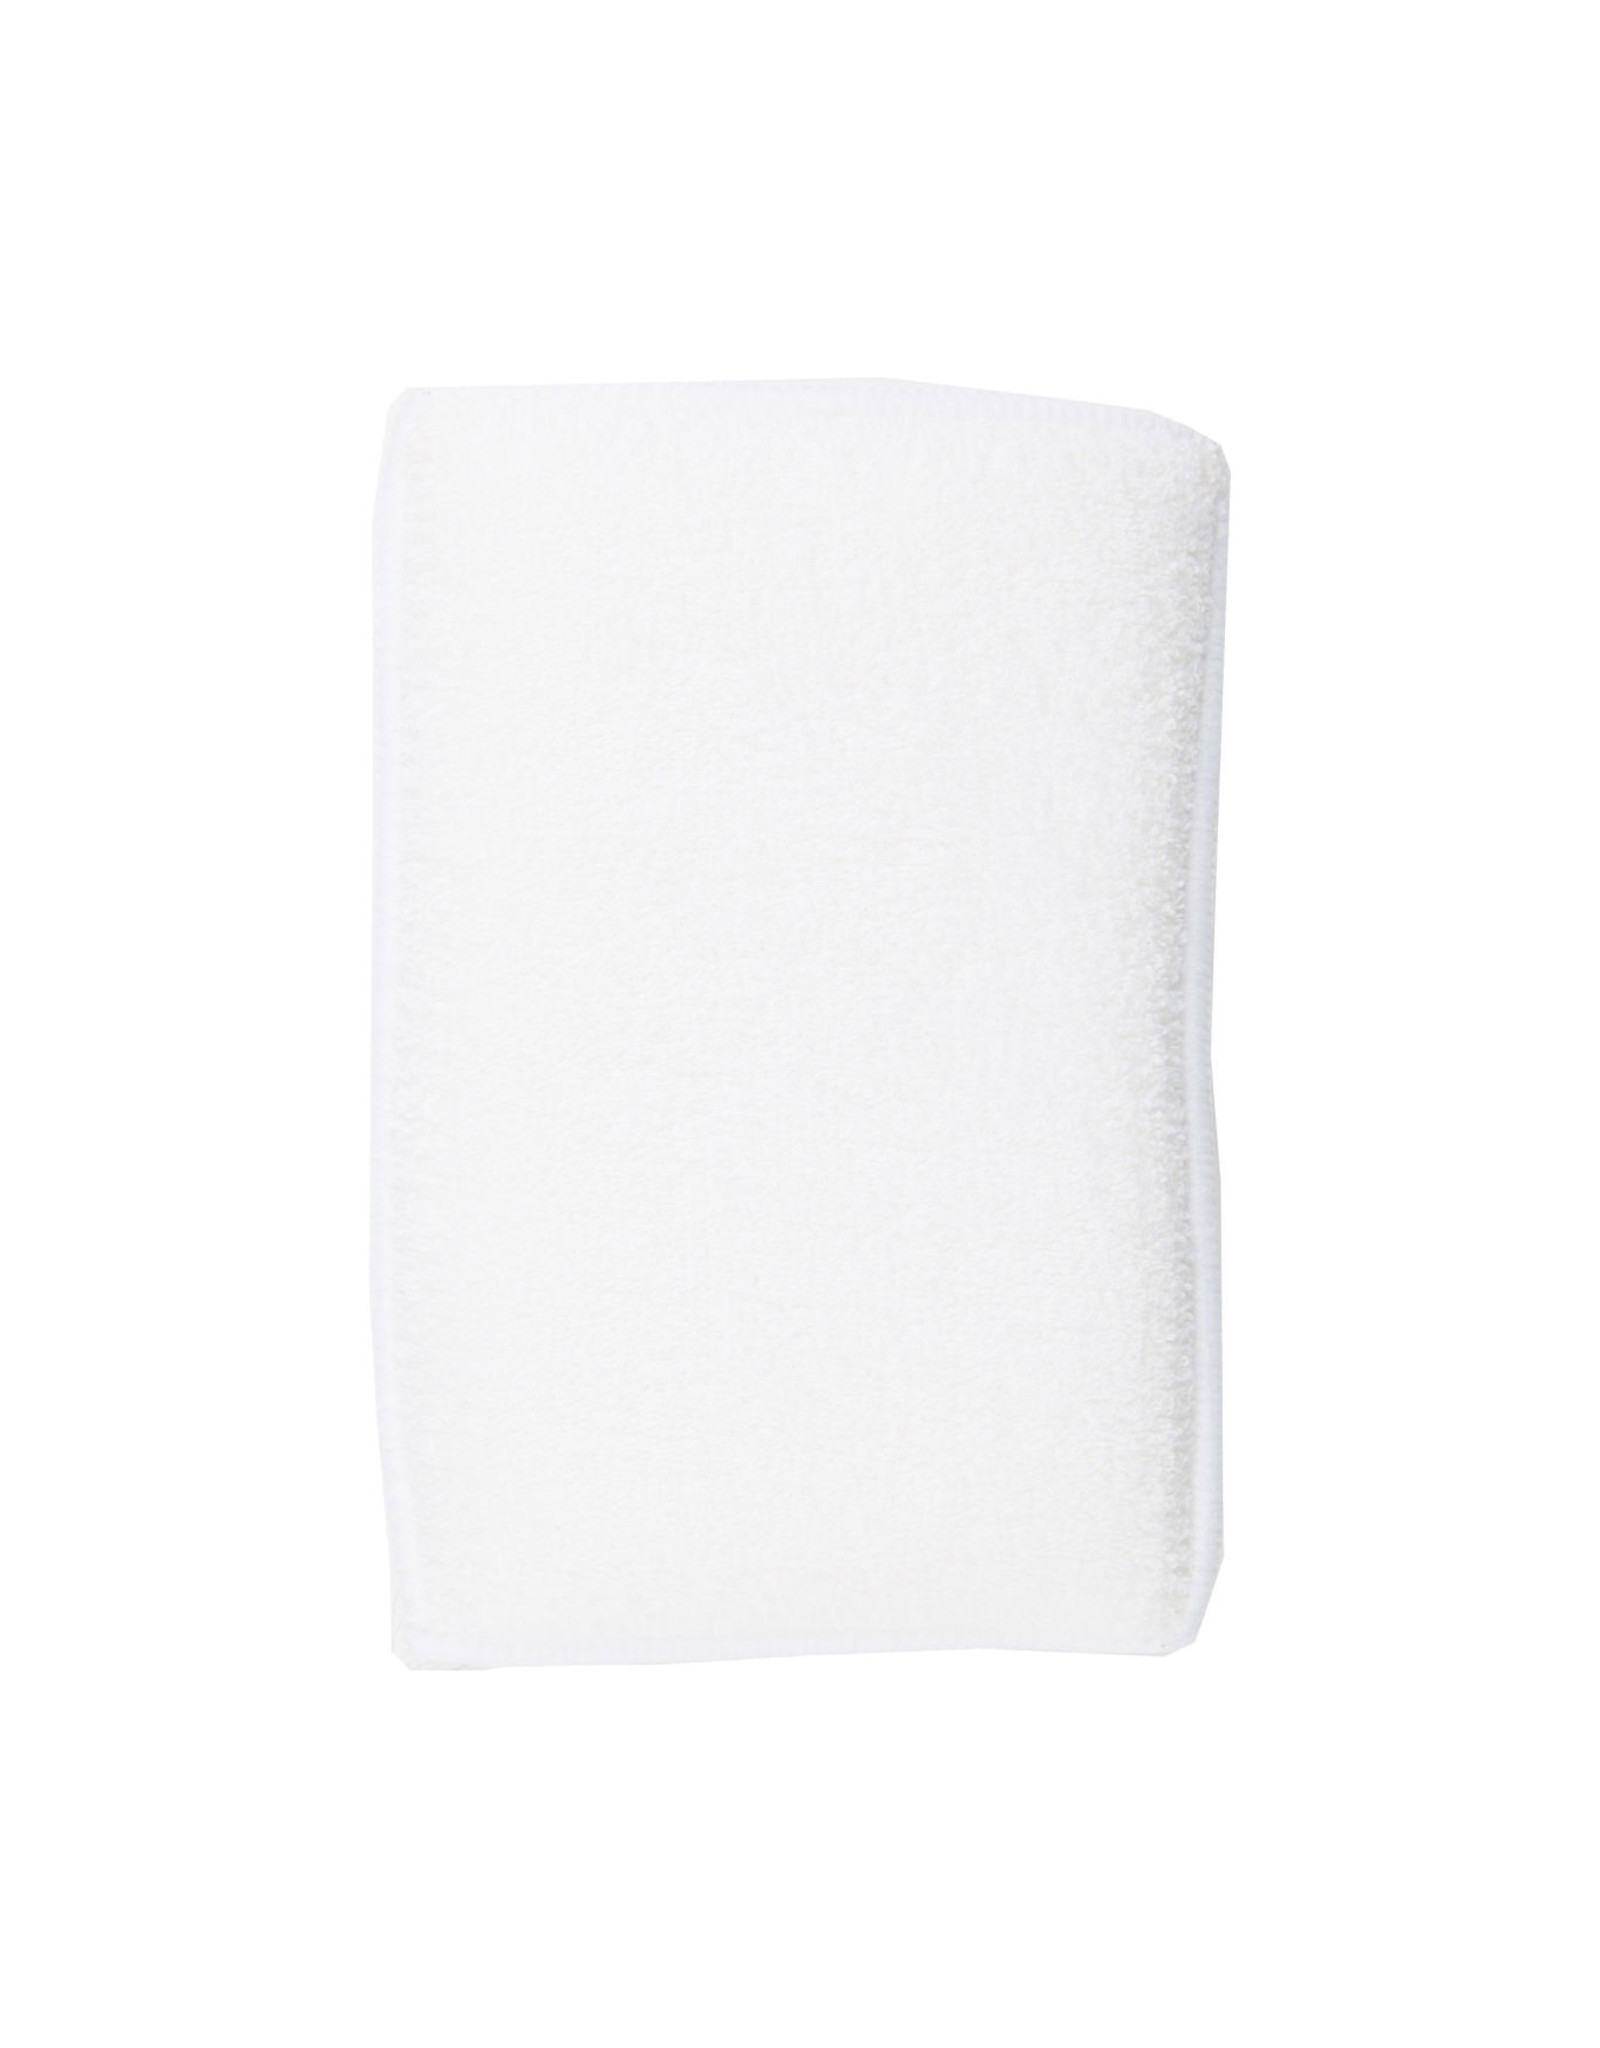 Fusion Mineral Paint Applicator Pads 2 pack